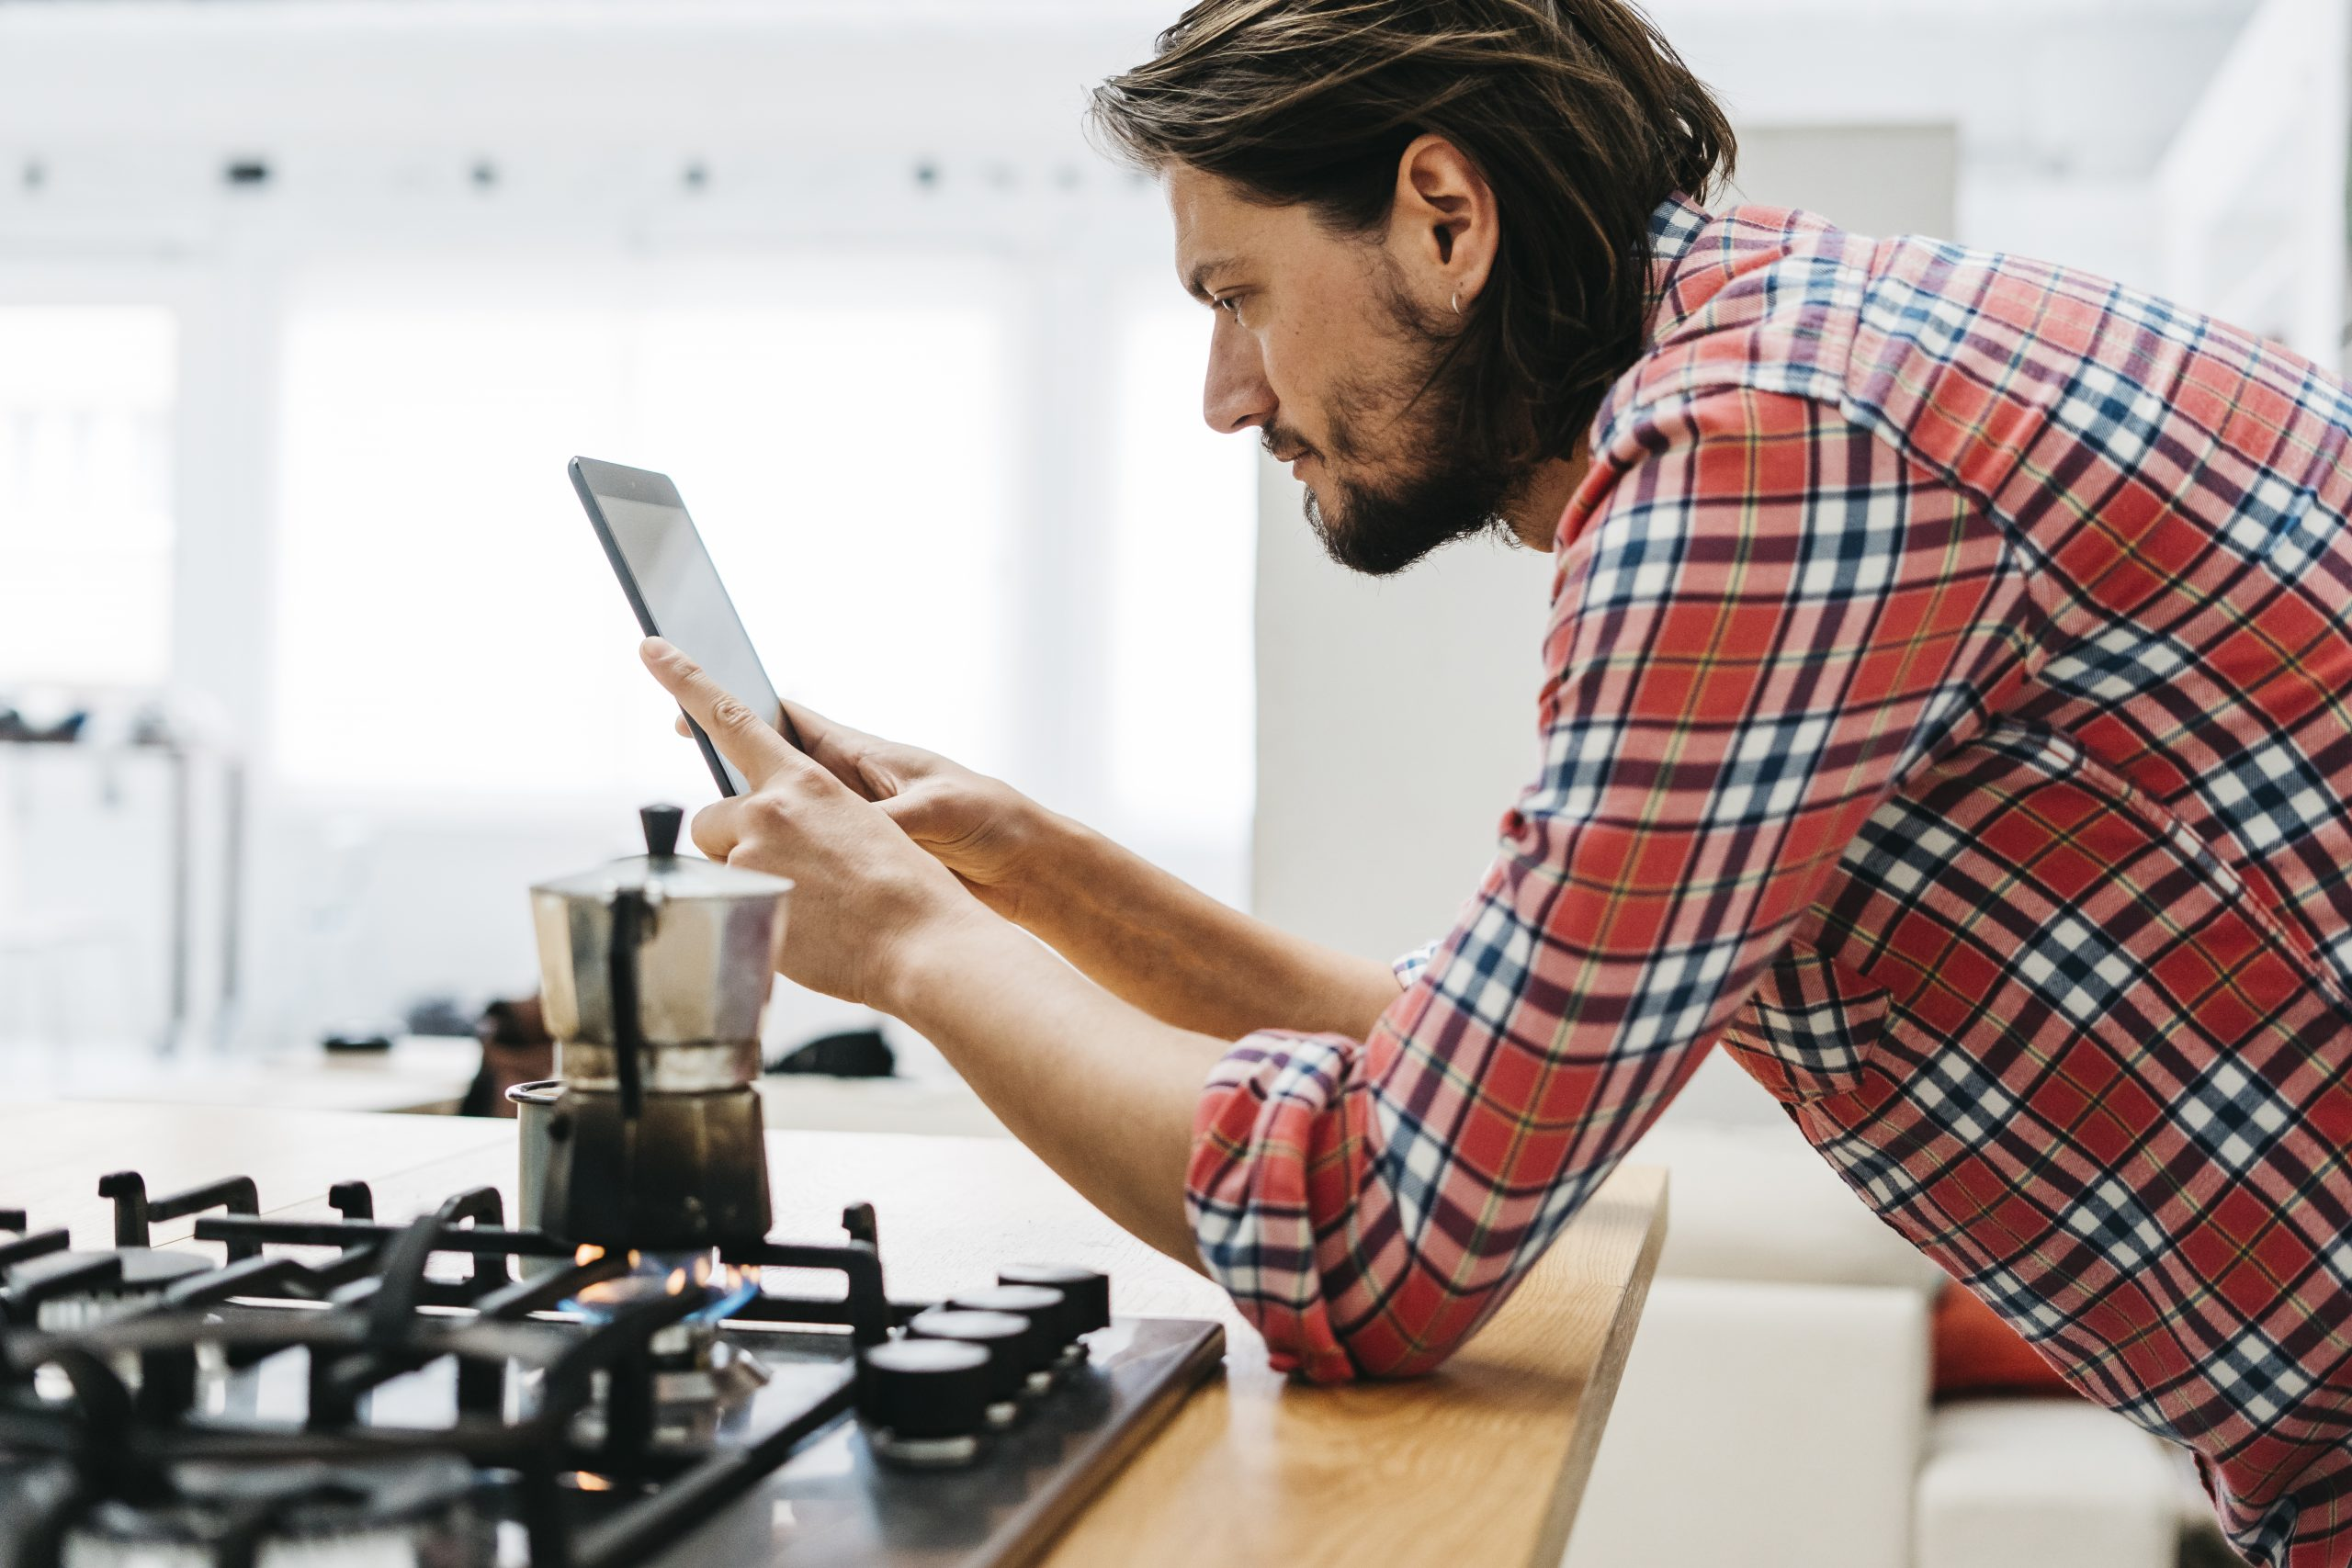 classic-coffee-maker-on-gas-fire-with-man-looking-at-digital-tablet-in-the-kitchen